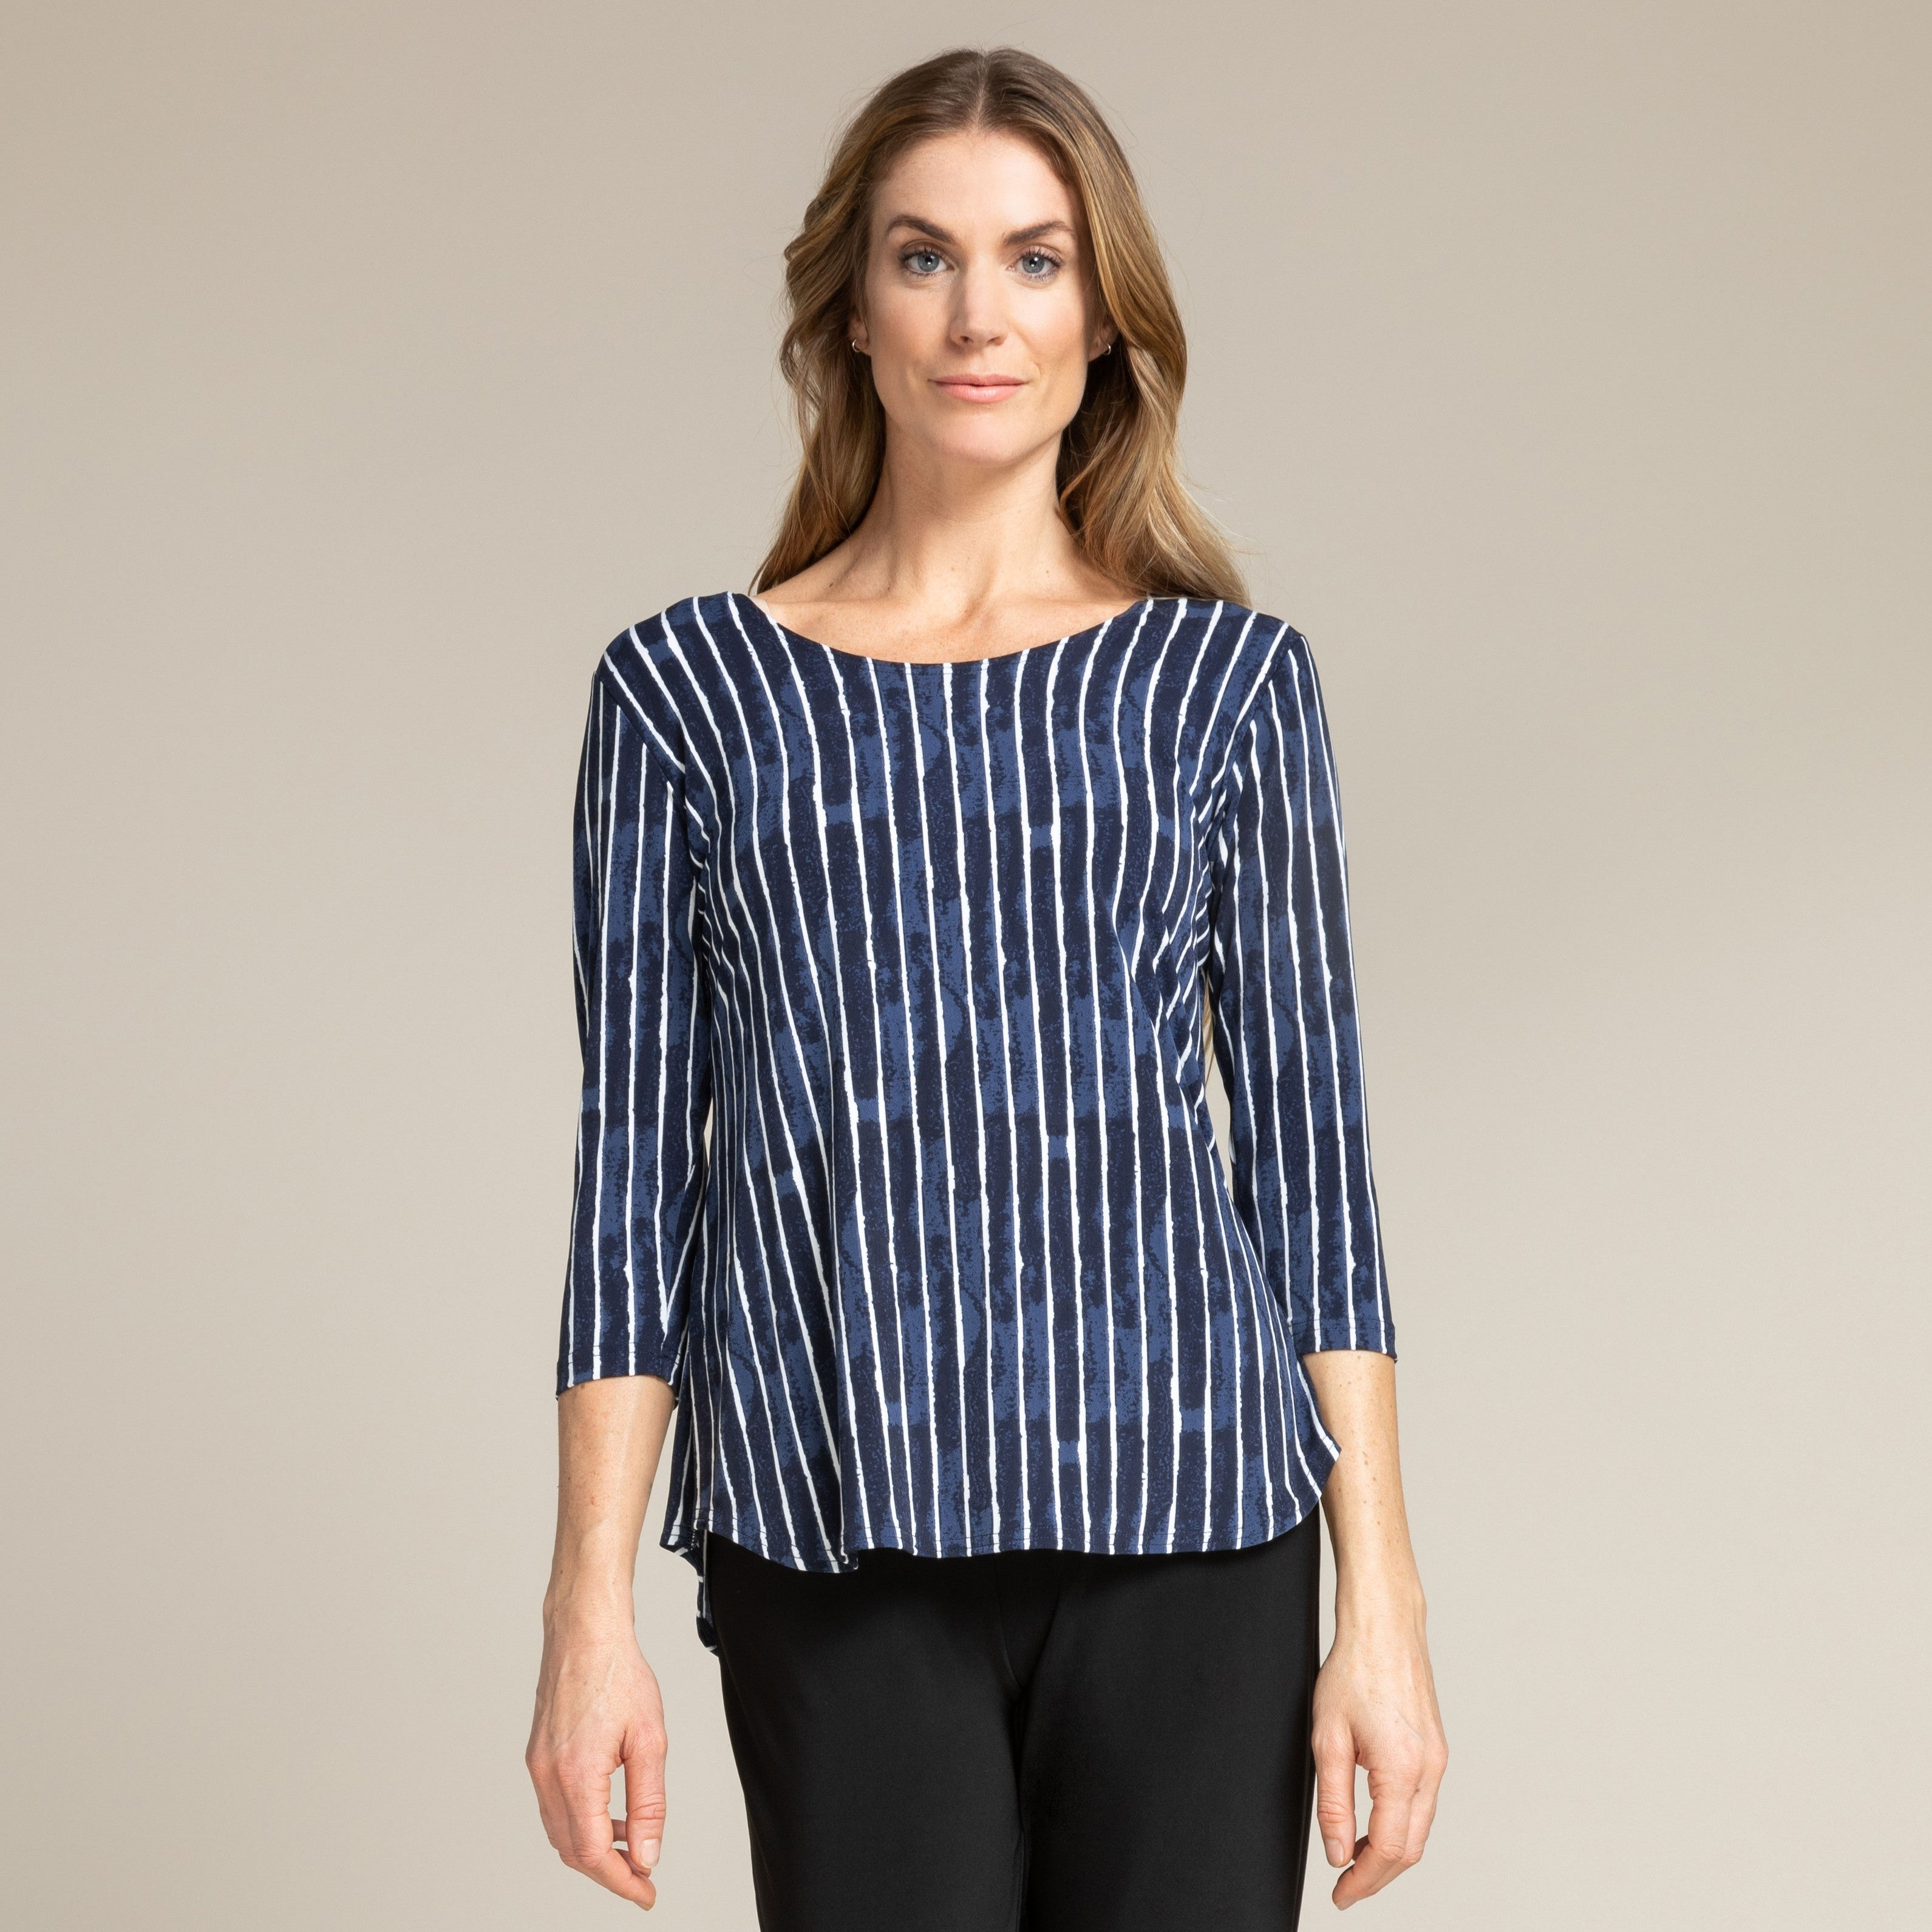 Go To Classic T Pattern, 3/4 Sleeve - 22110RCB-2